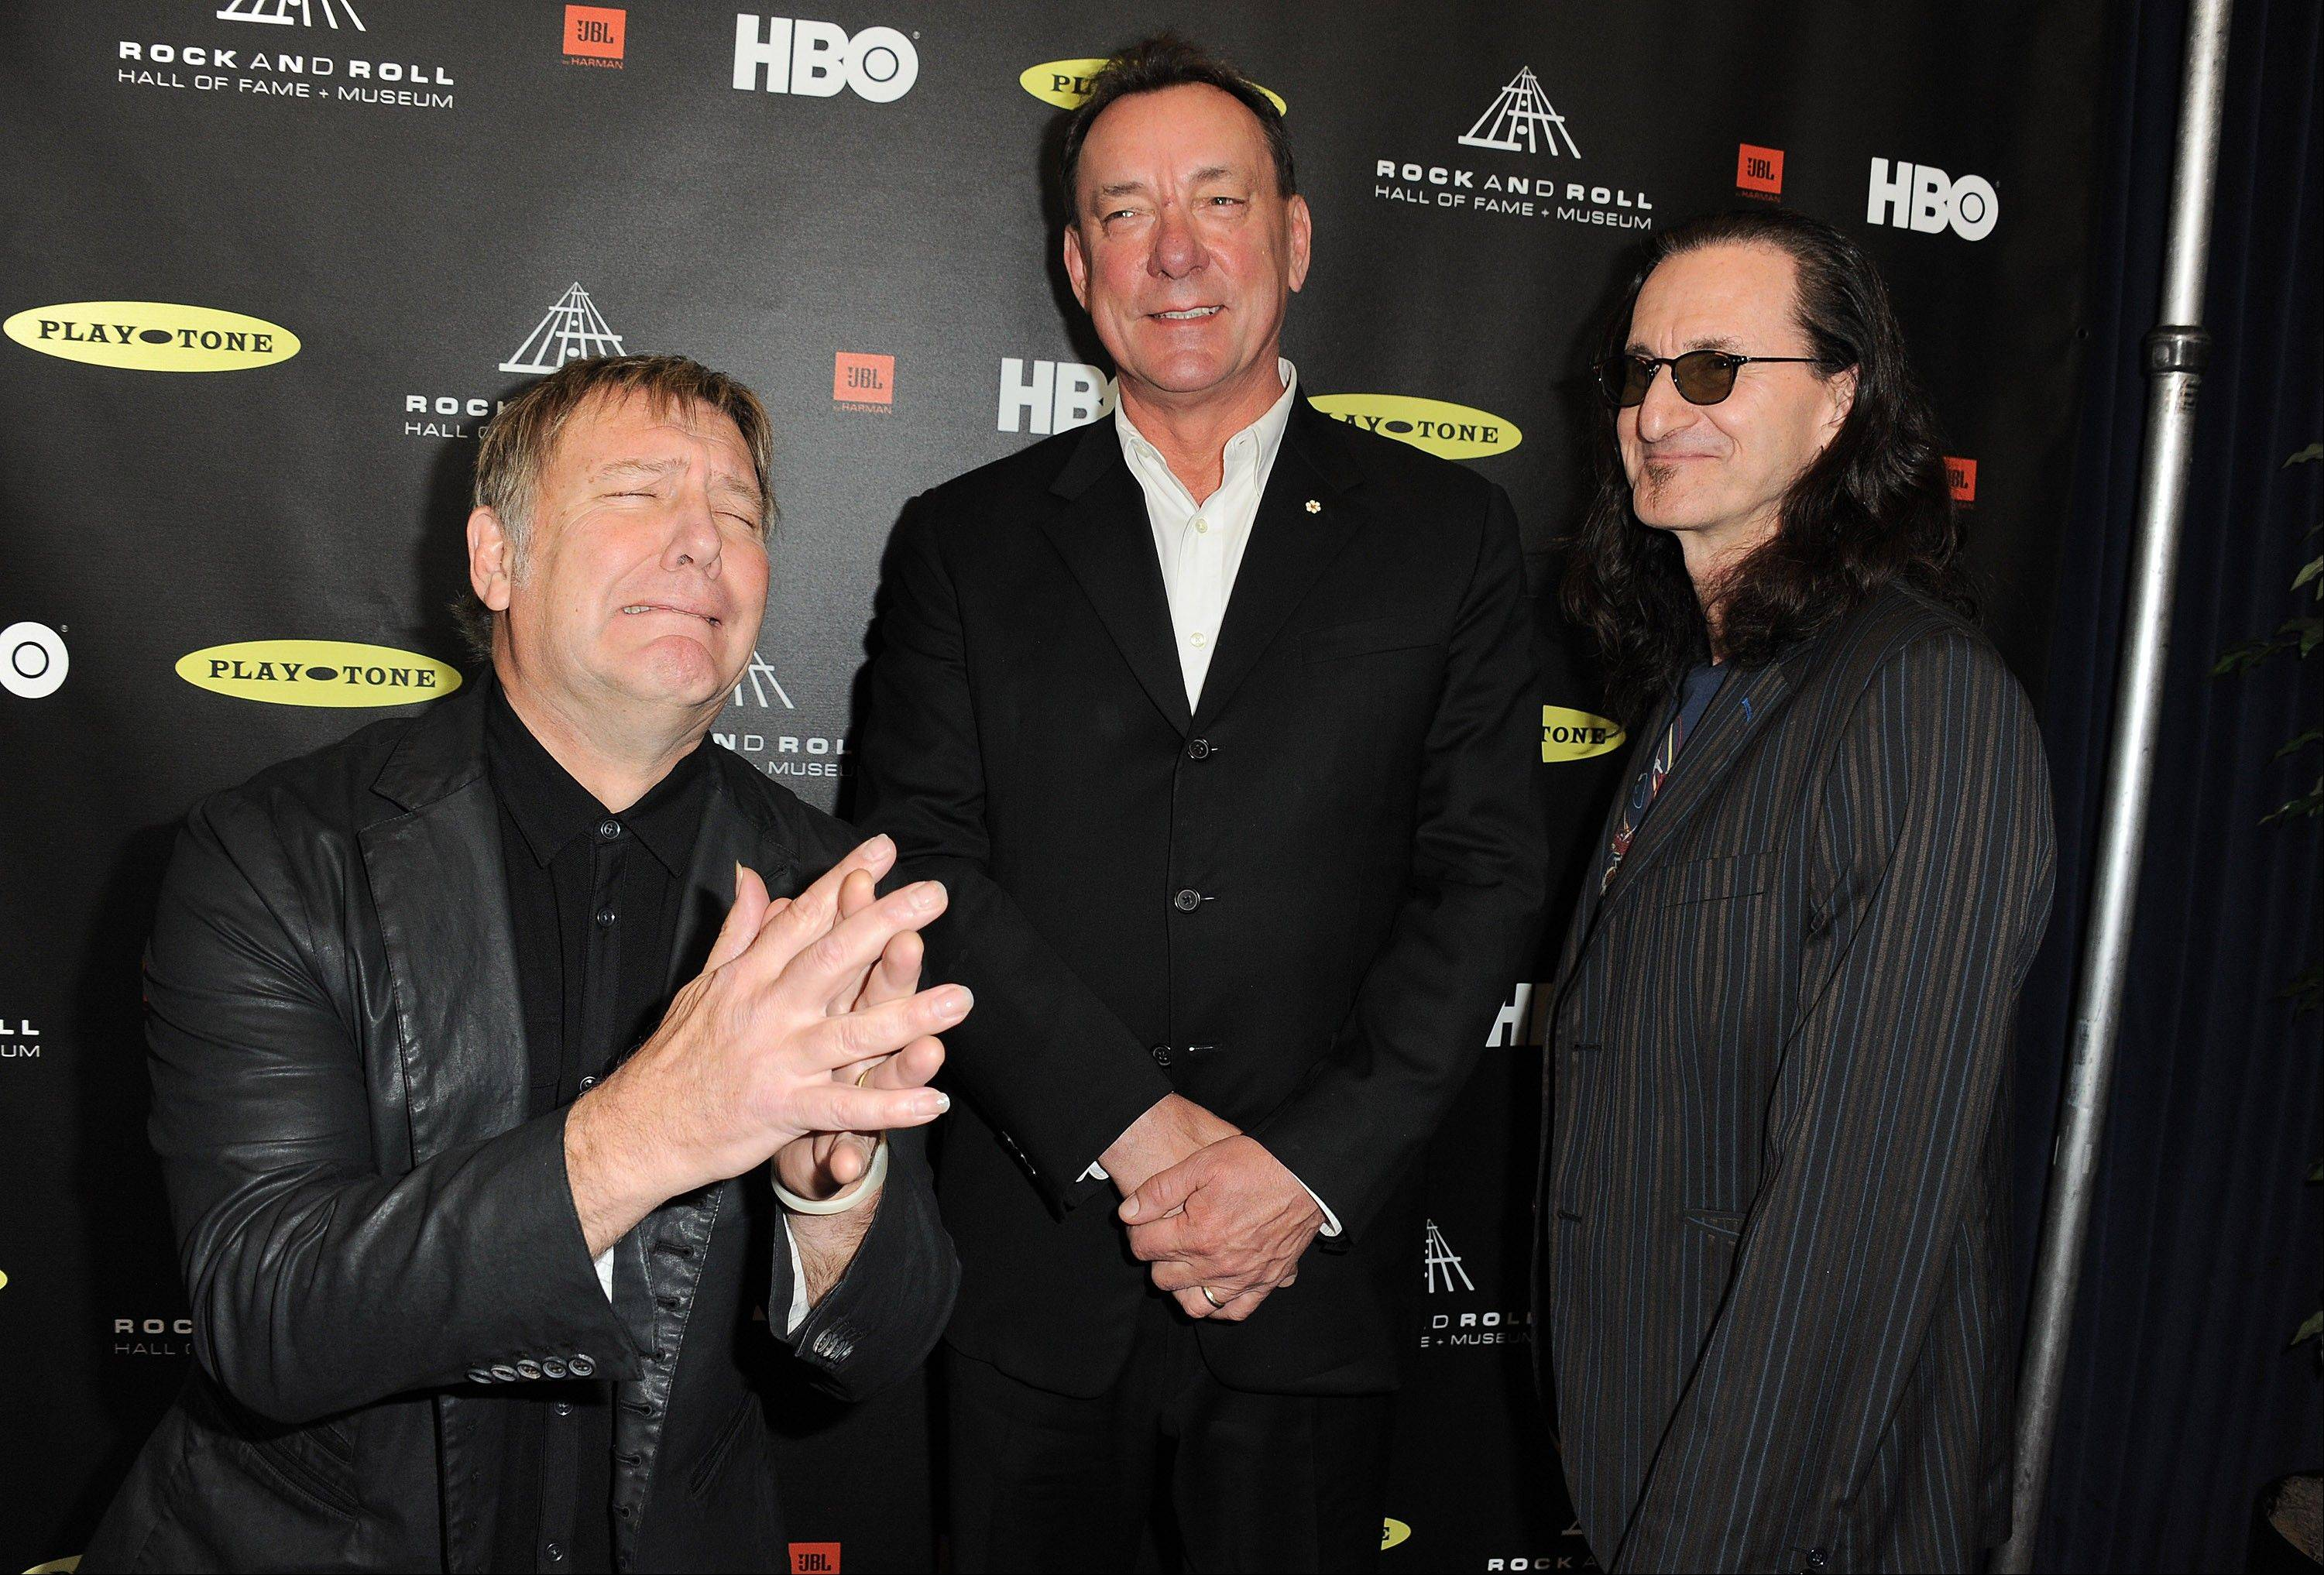 Alex Lifeson, left, Neil Peart, and Geddy Lee of Rush attend the Rock and Roll Hall of Fame Induction Ceremony at the Nokia Theatre on Thursday in Los Angeles.